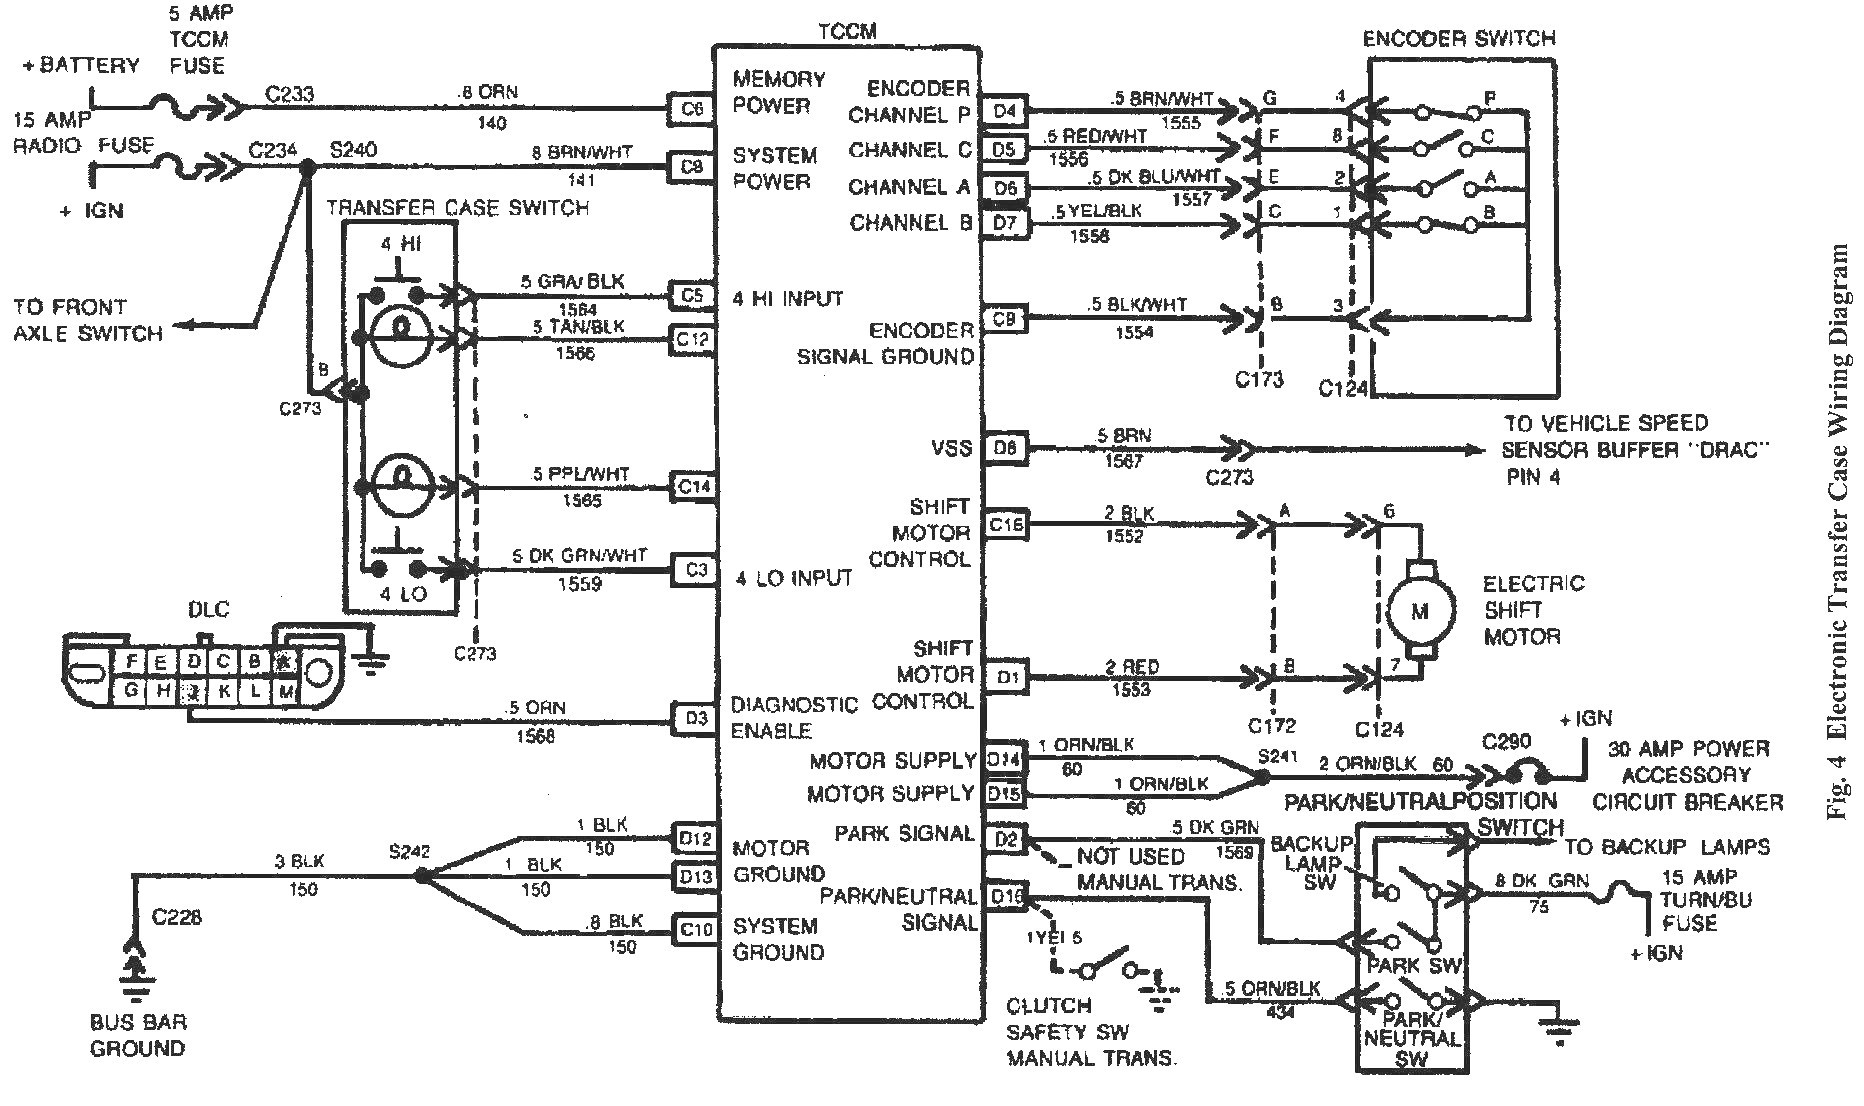 Wiring Diagram For 2000 Chevrolet S 10 Blazer S10 Image On